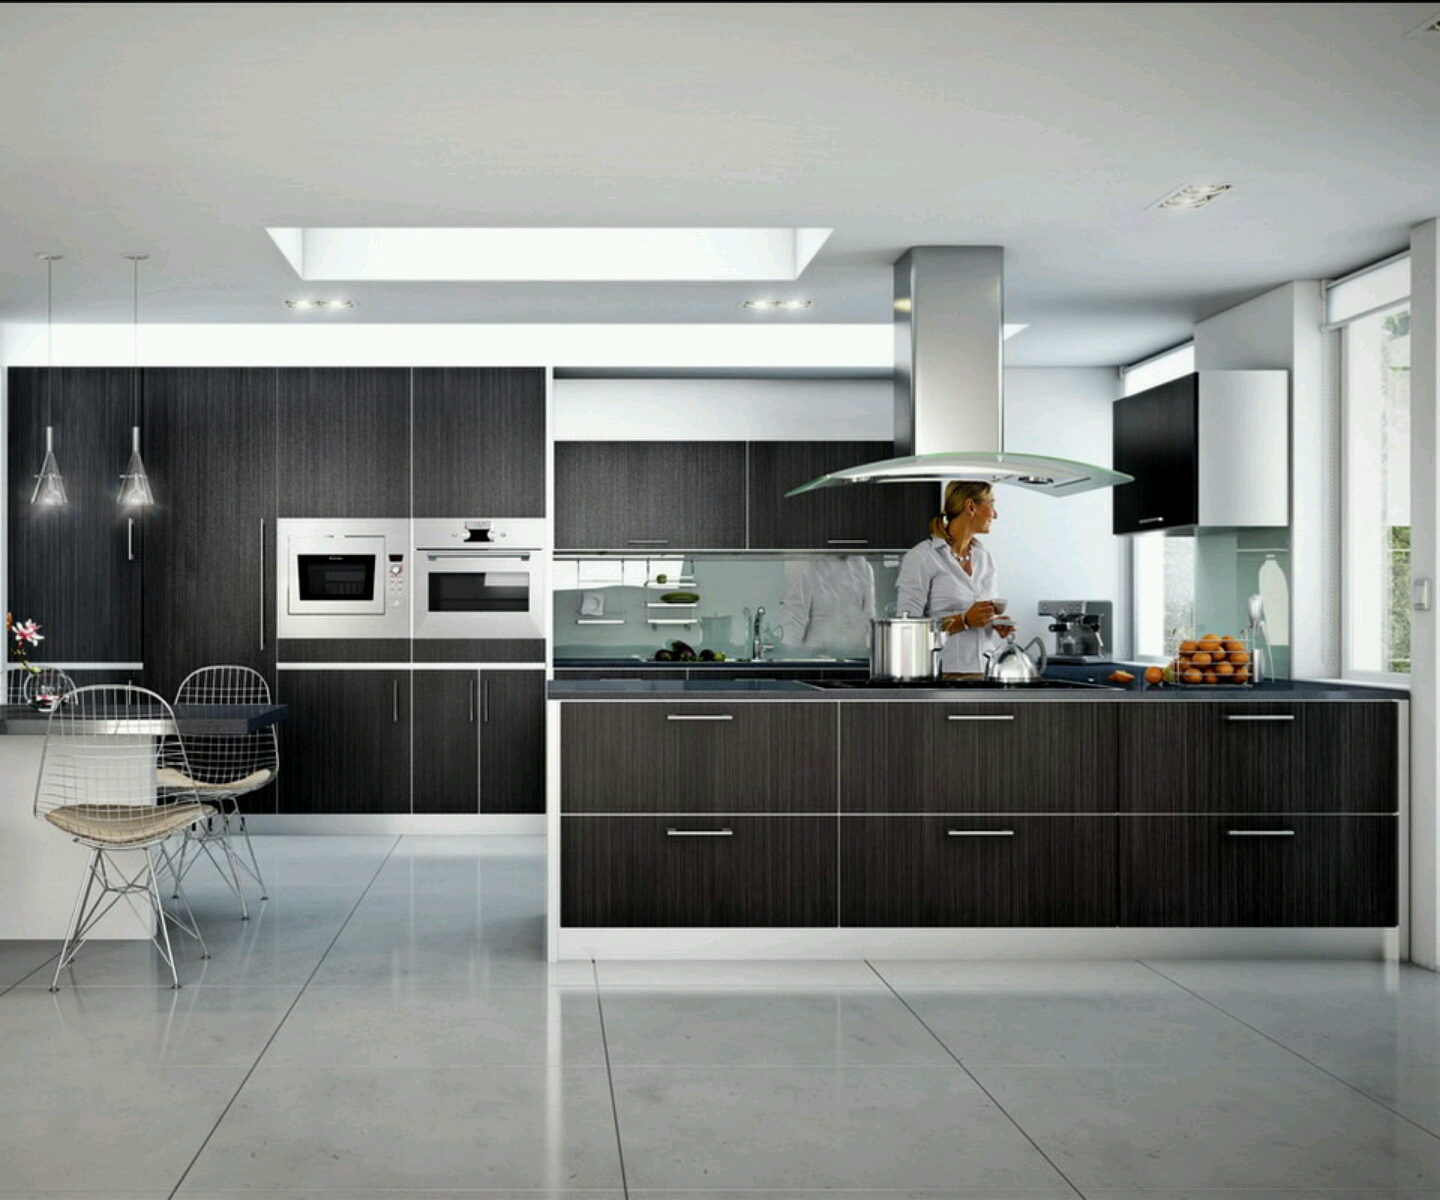 Rumah rumah minimalis modern homes ultra modern kitchen for Modern kitchen design